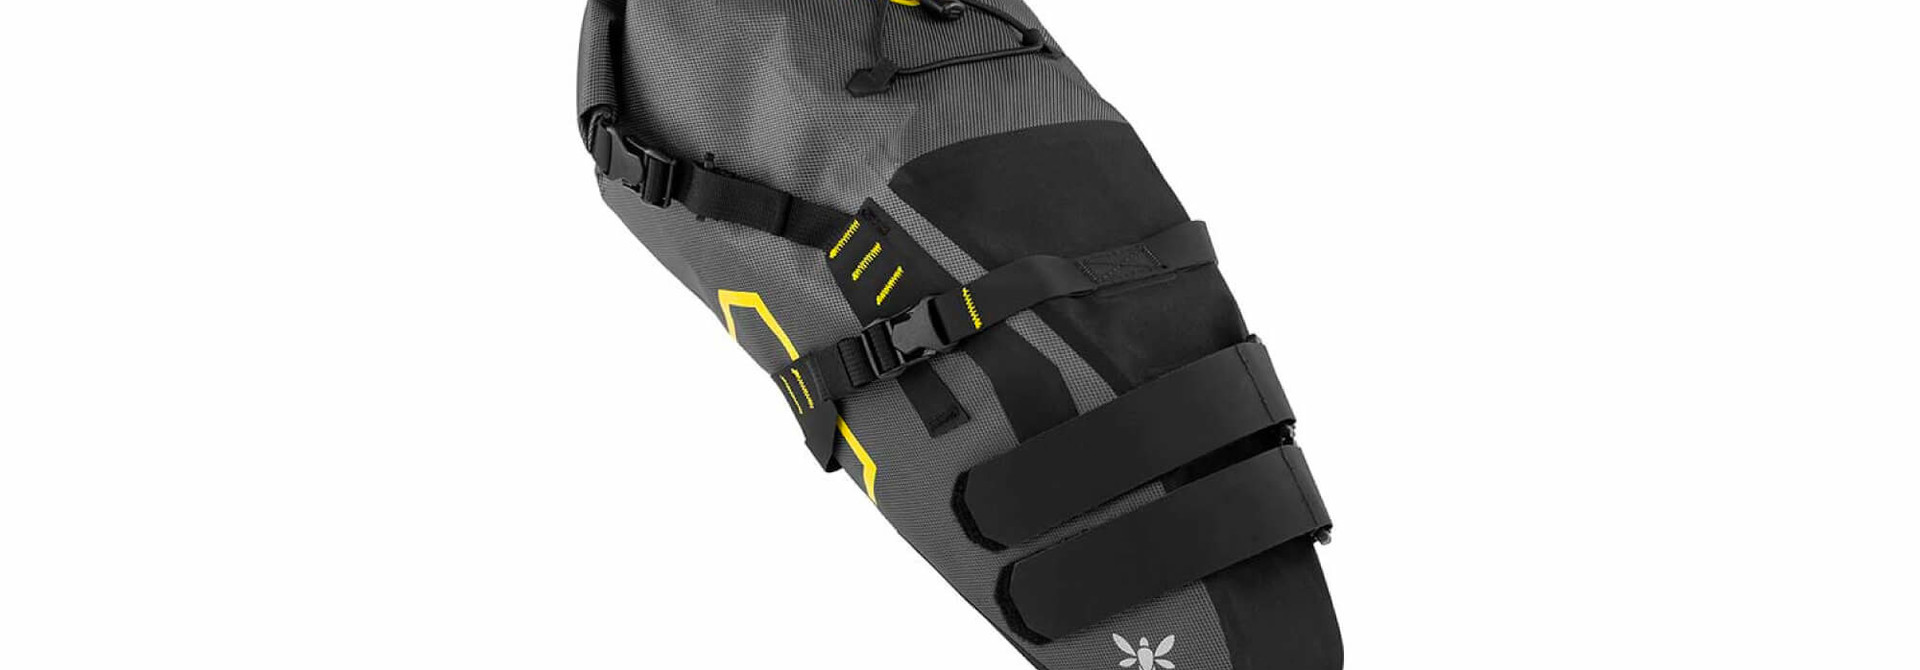 Expedition Saddle Pack 14 L